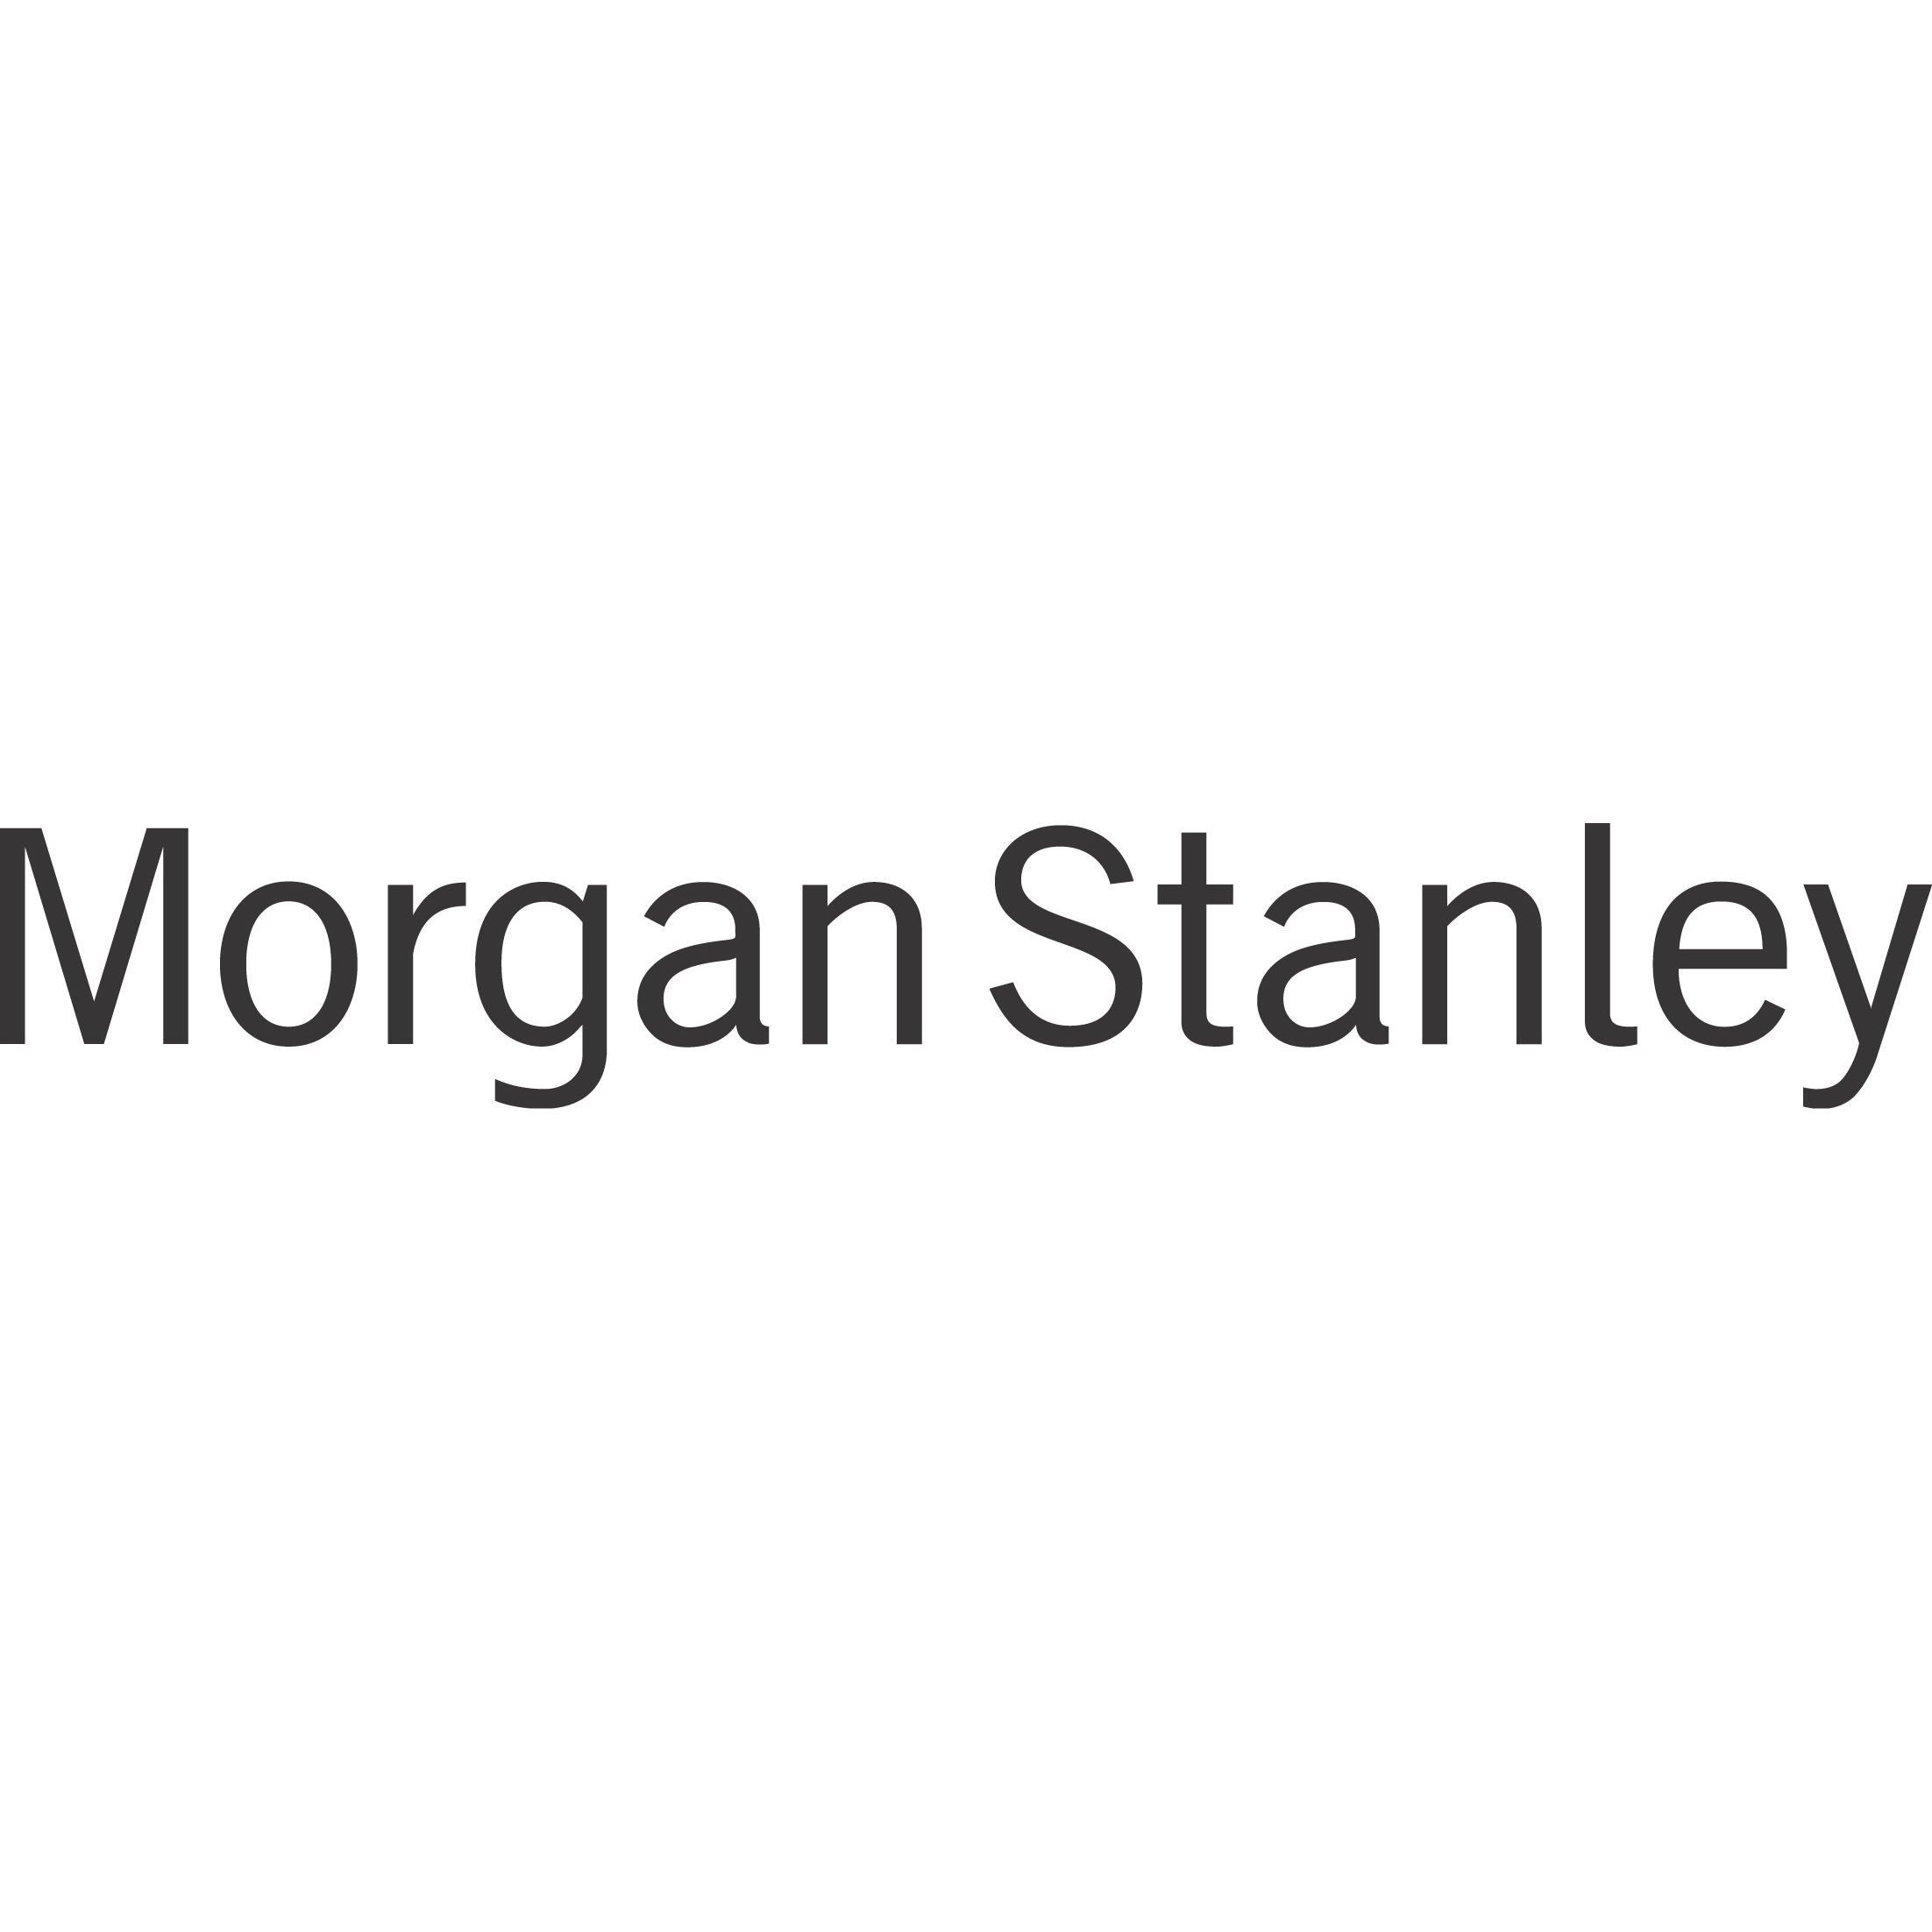 Michael Ortega - Morgan Stanley | Financial Advisor in Irvine,California